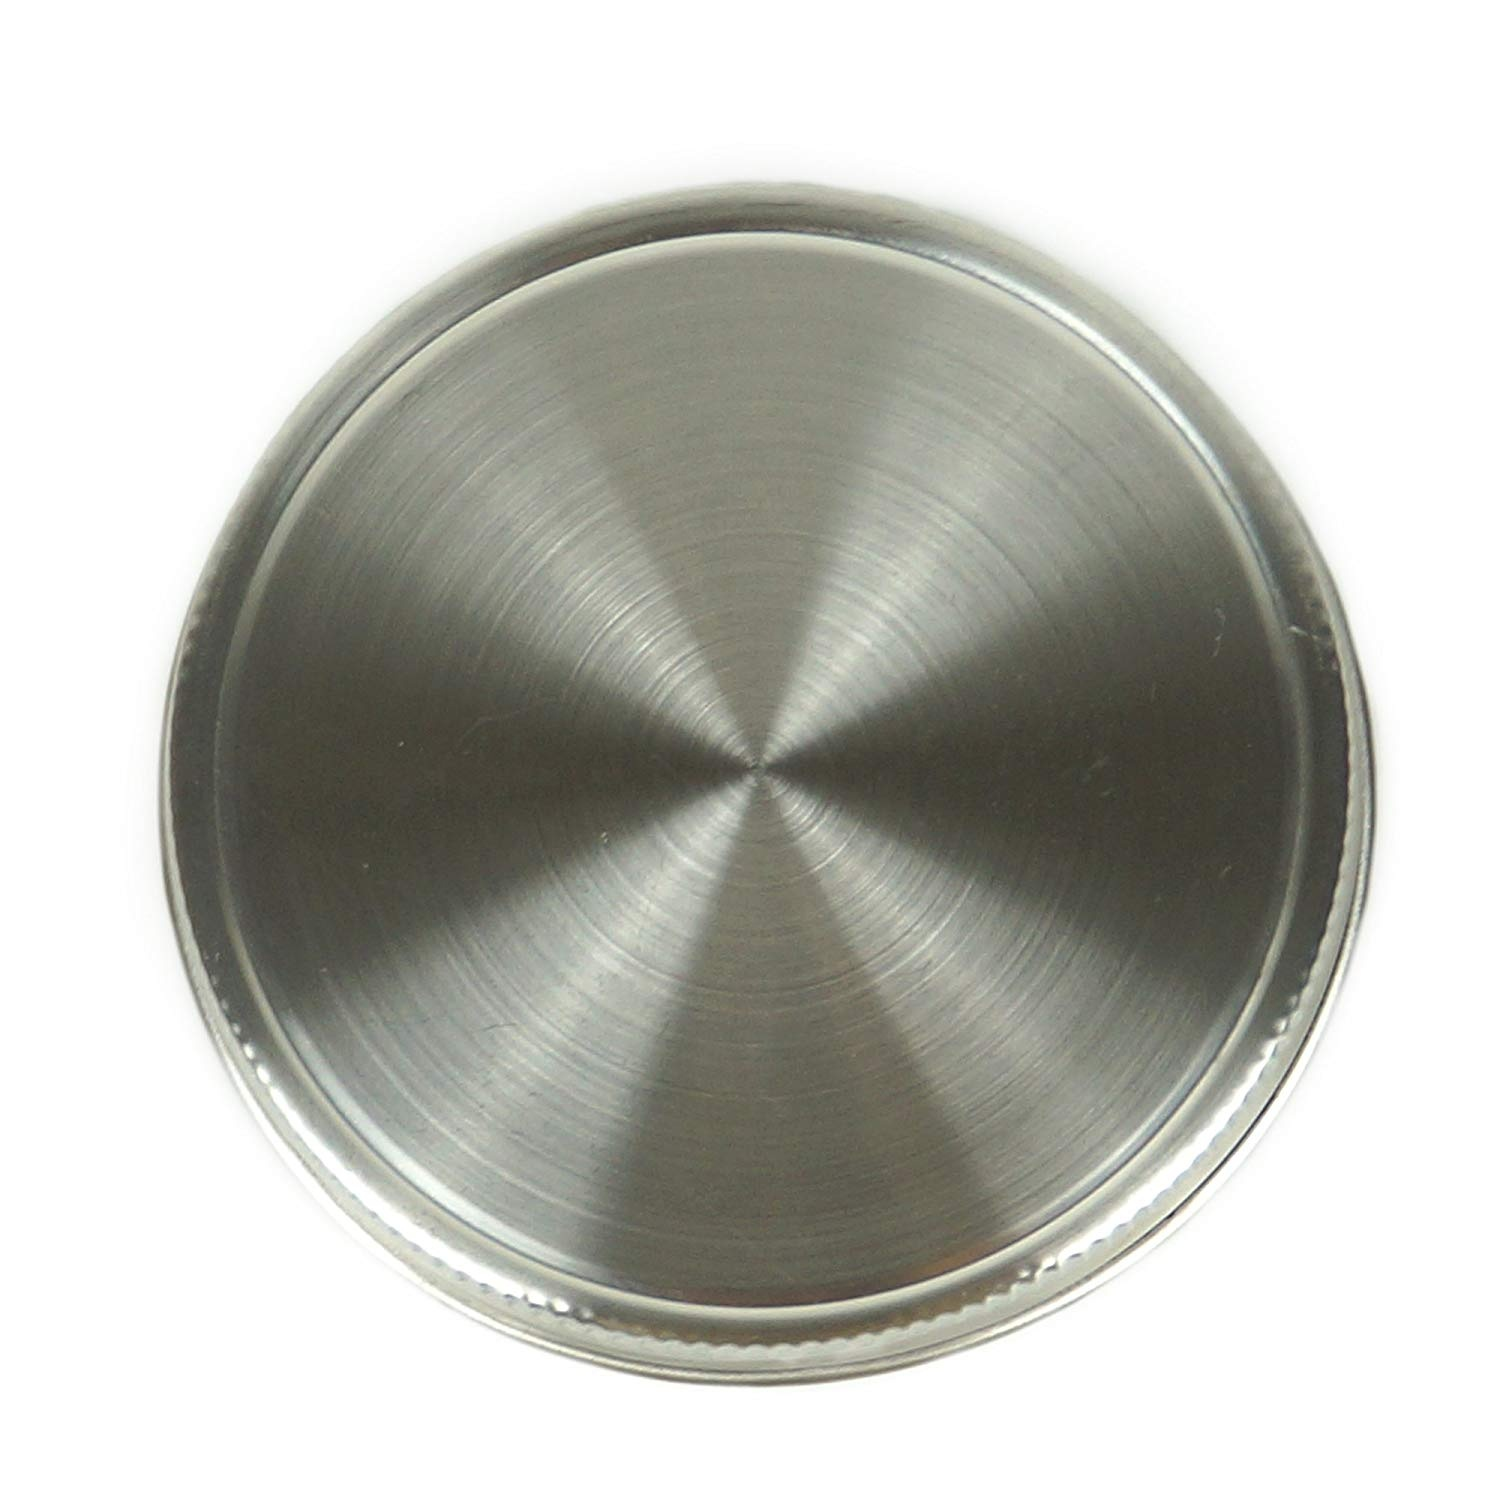 70 MM Regular 입 Air 꽉 Stainless Steel Lid 와 Silicone 링 메이슨 Jar lid